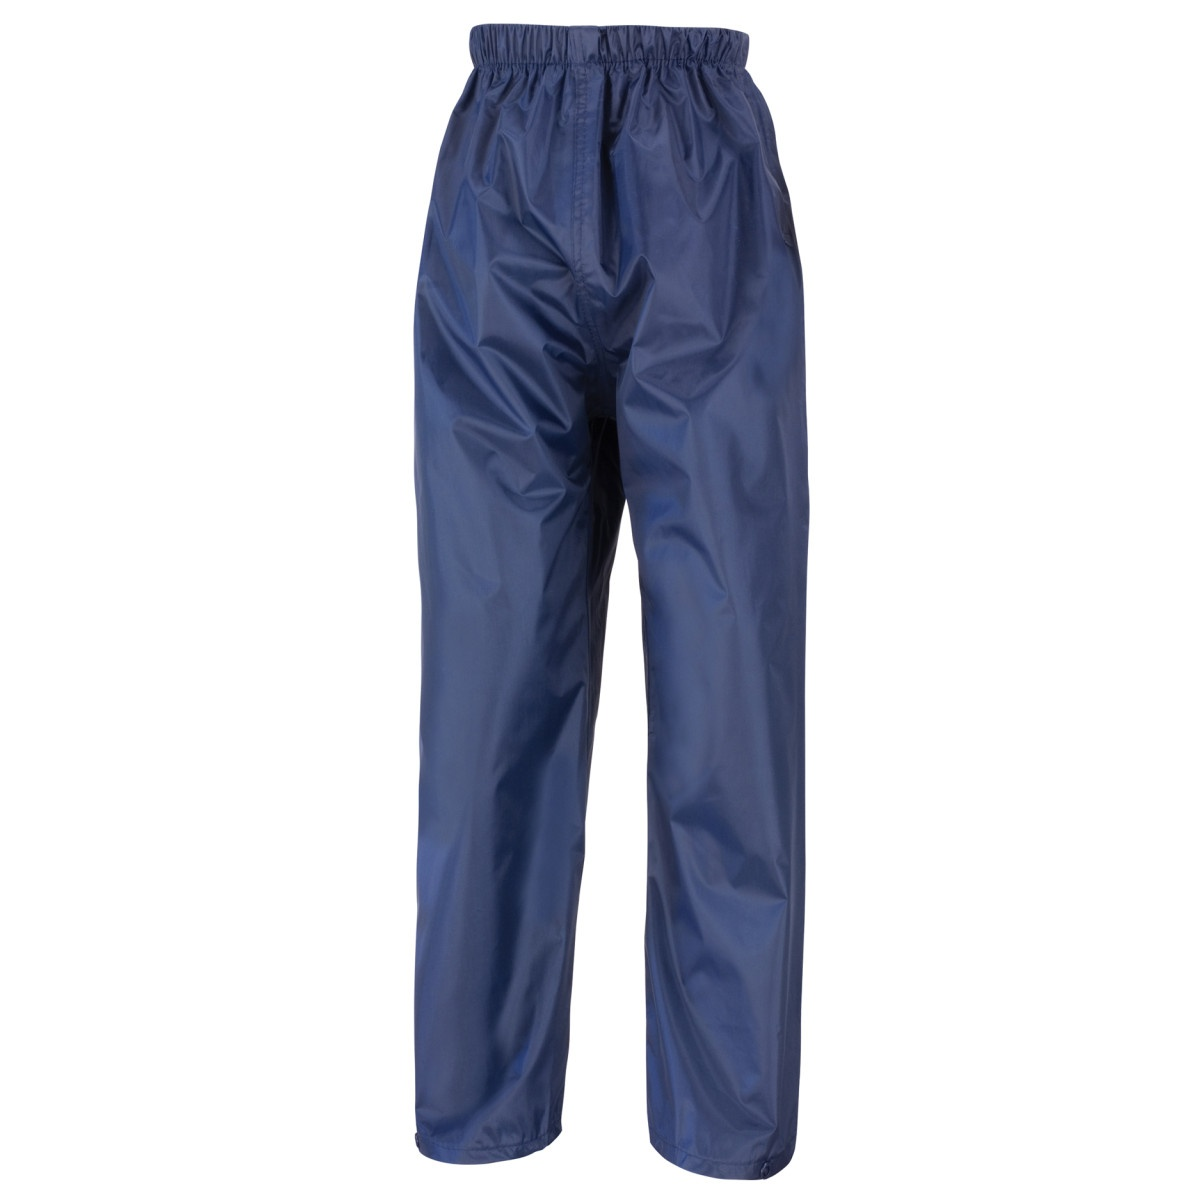 Result Core Kids/Childrens Unisex Stormdri Rain Over Trouser / Pants (11-12 years) (Navy Blue)